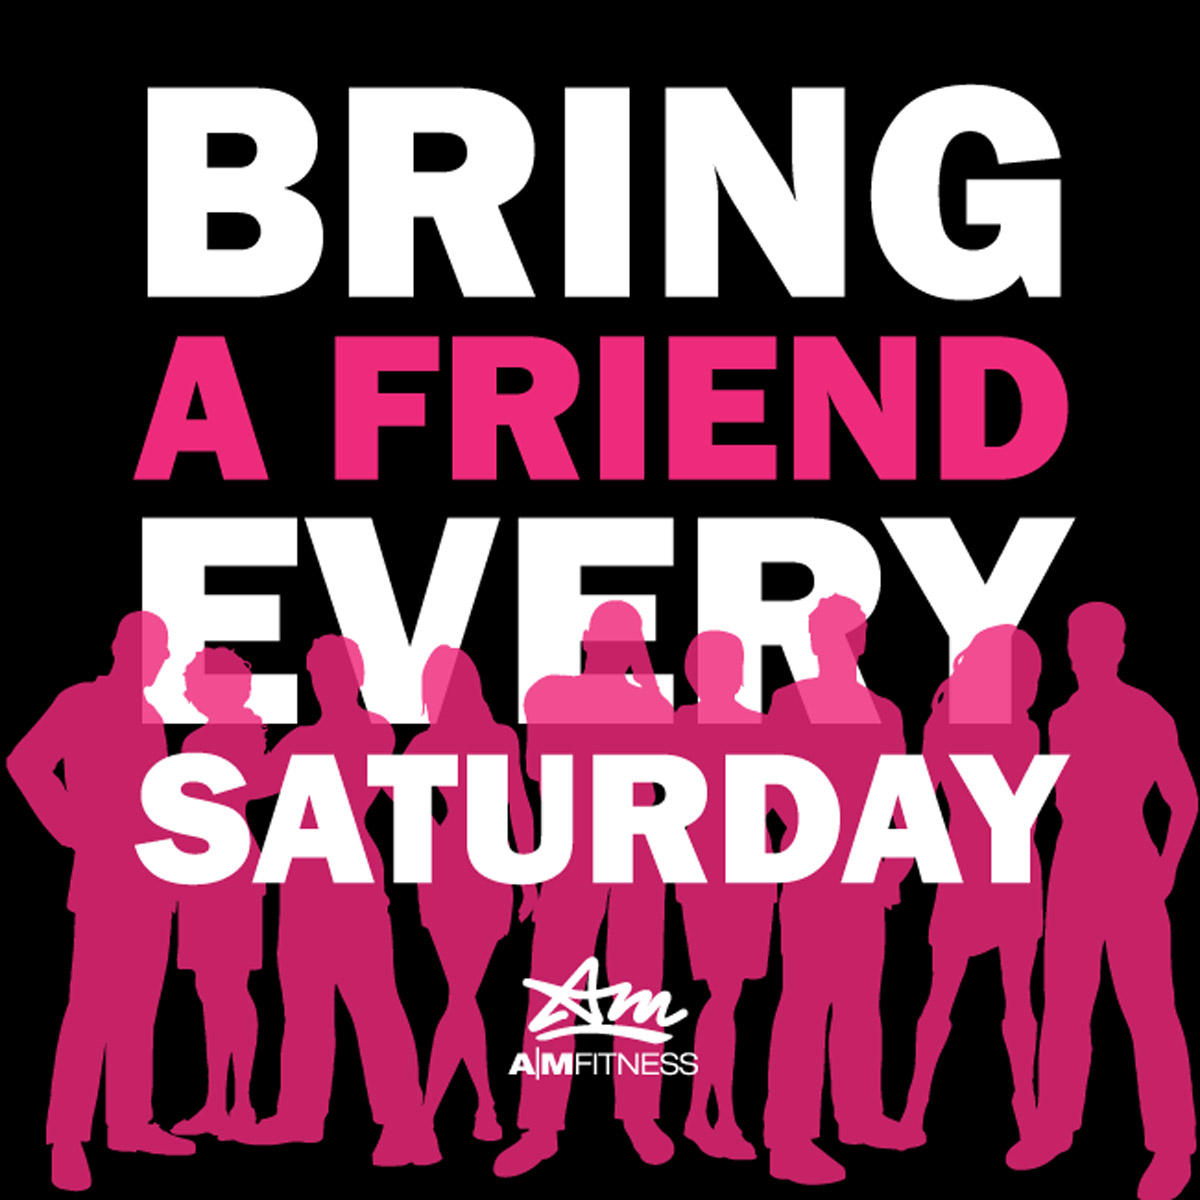 bring_a_friend_people3